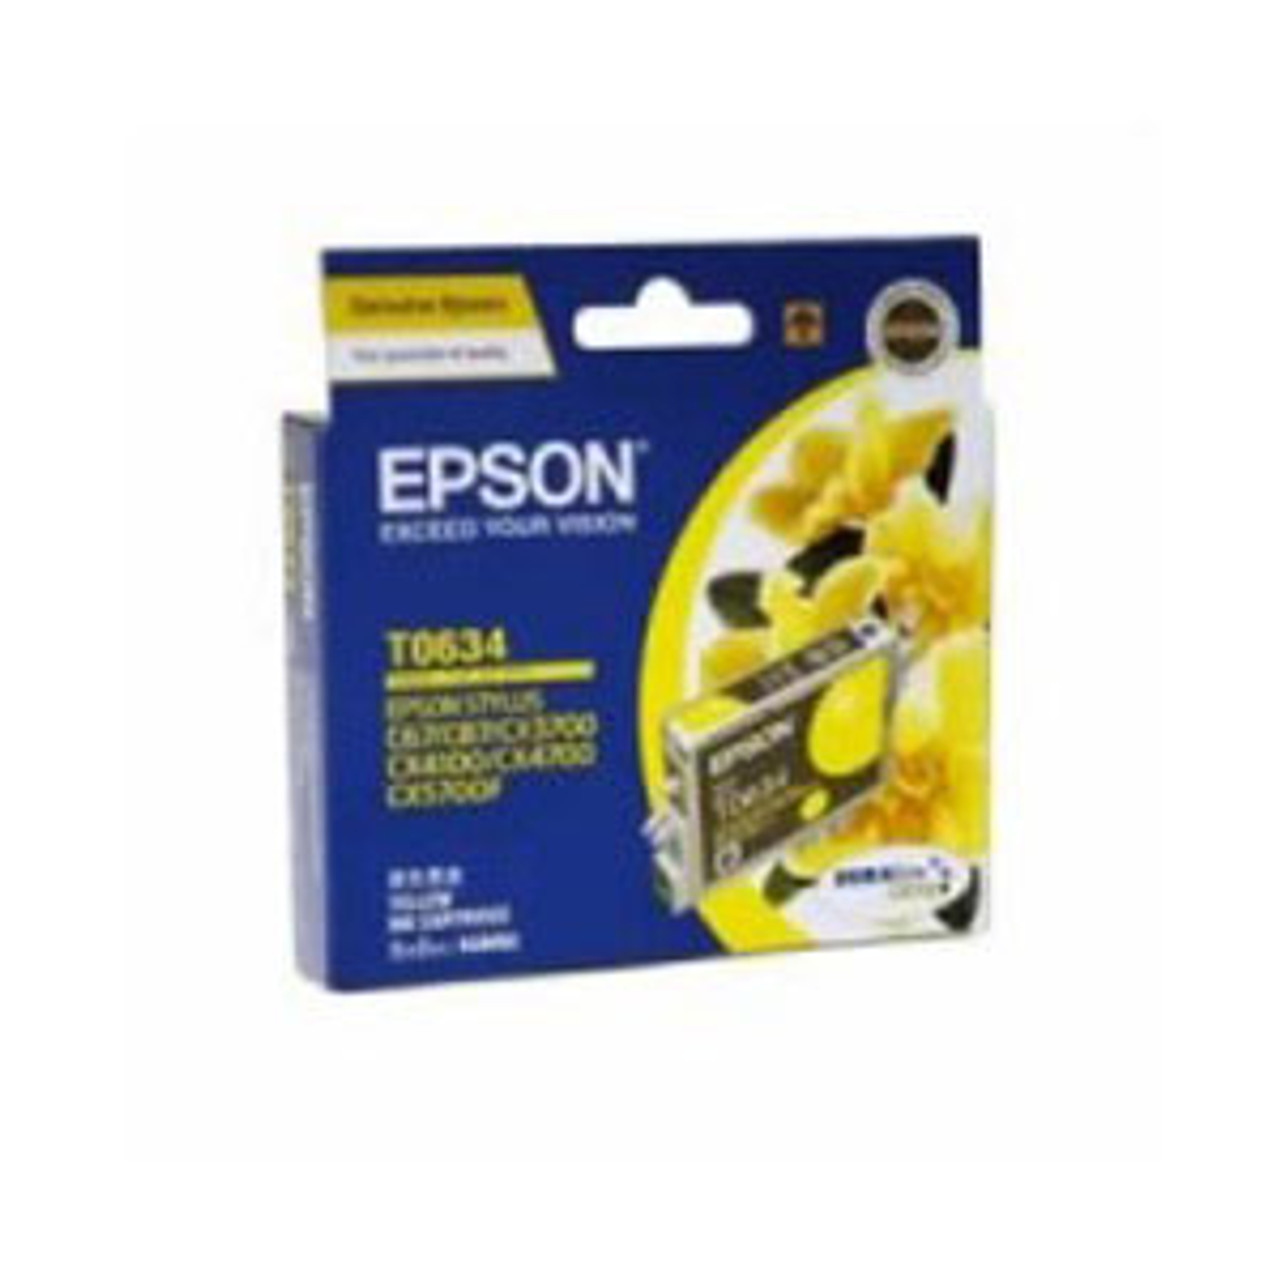 Image for Epson T0634 Yellow Ink Cart 380 pages Yellow CX Computer Superstore